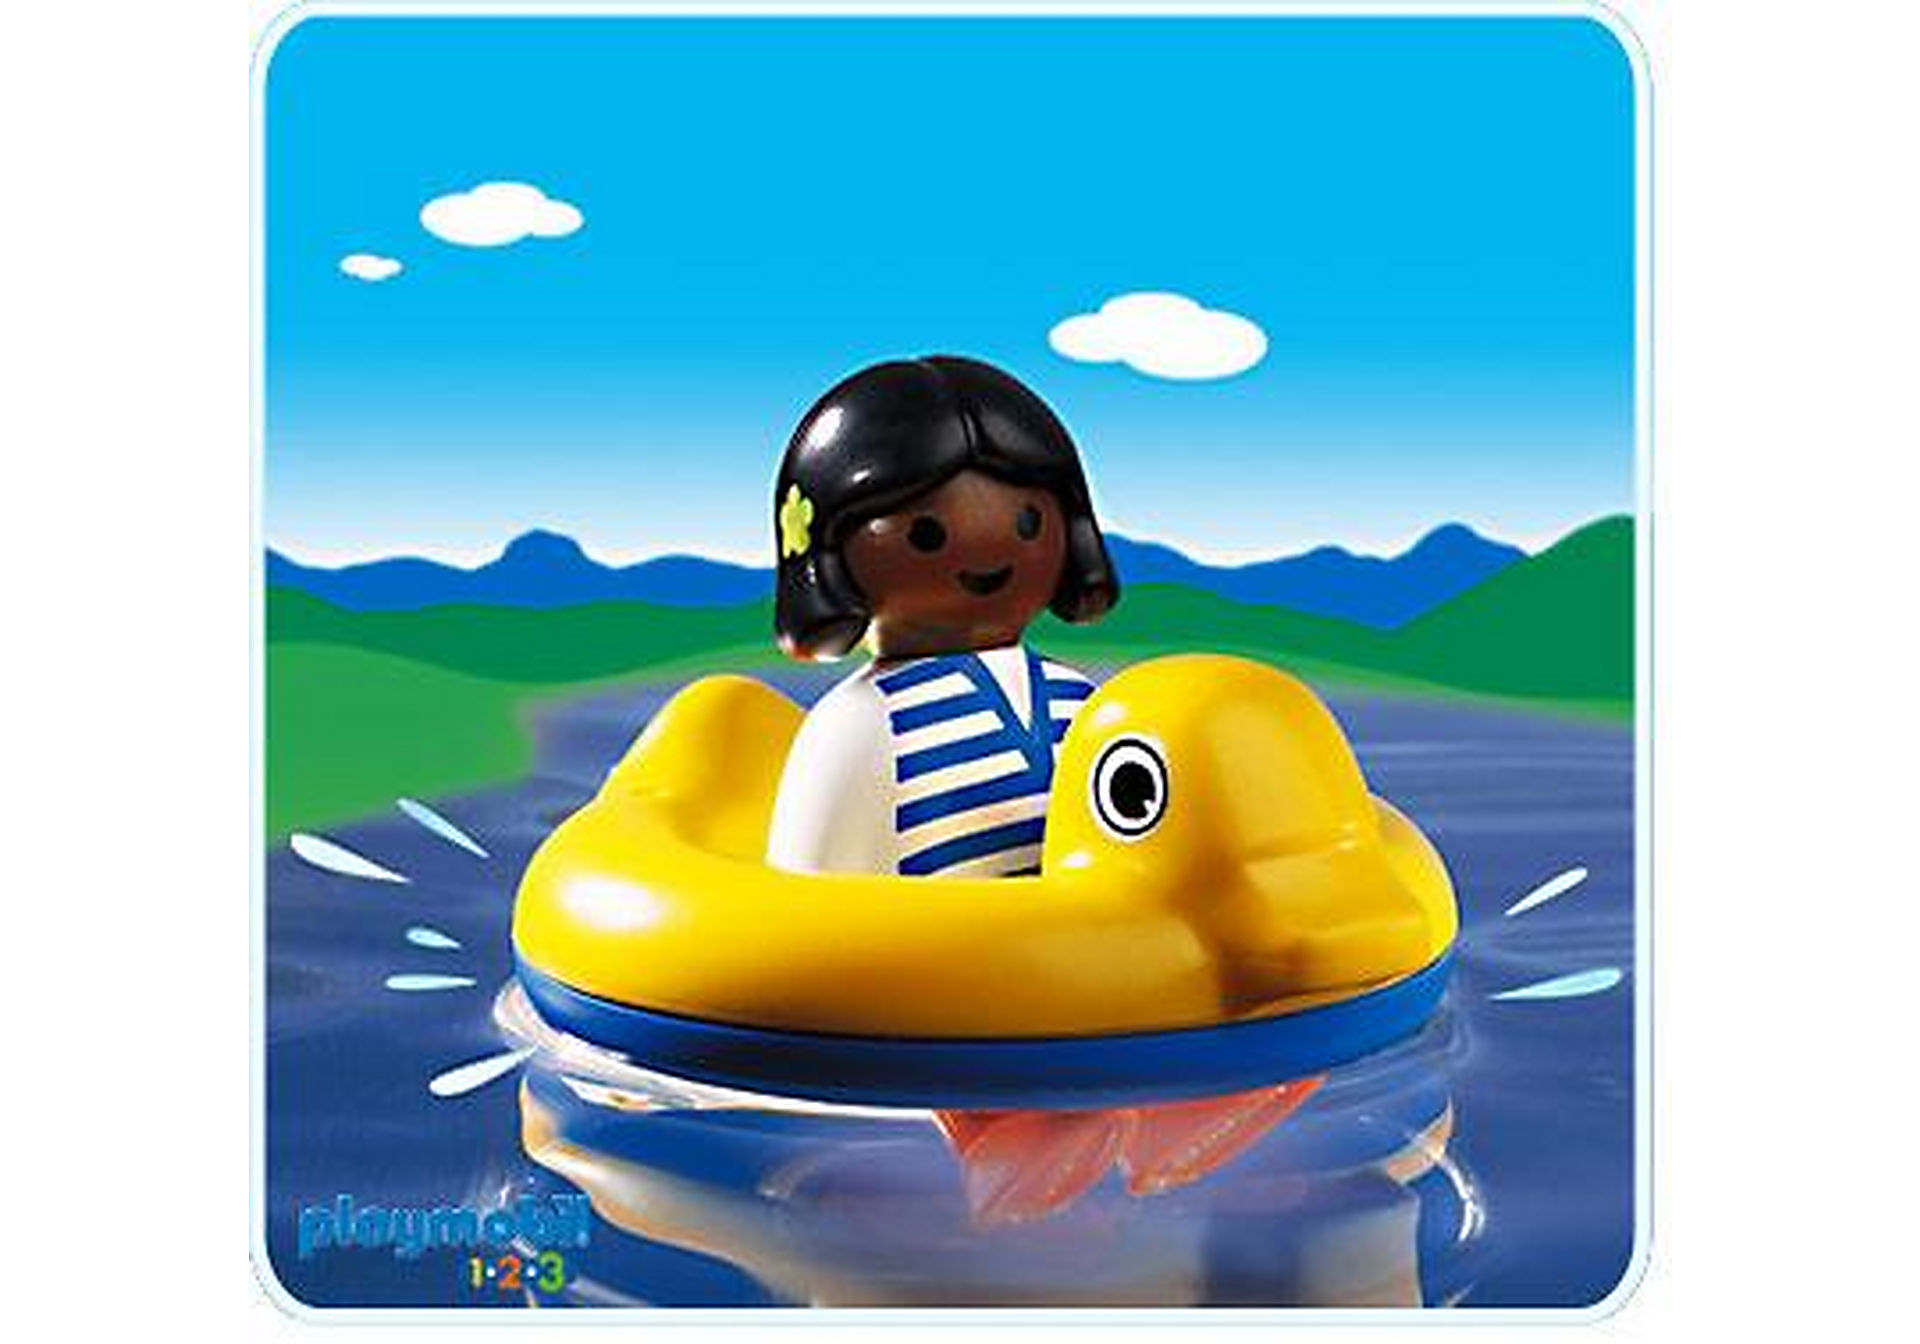 http://media.playmobil.com/i/playmobil/6726-A_product_detail/Enfant/Bouee canard